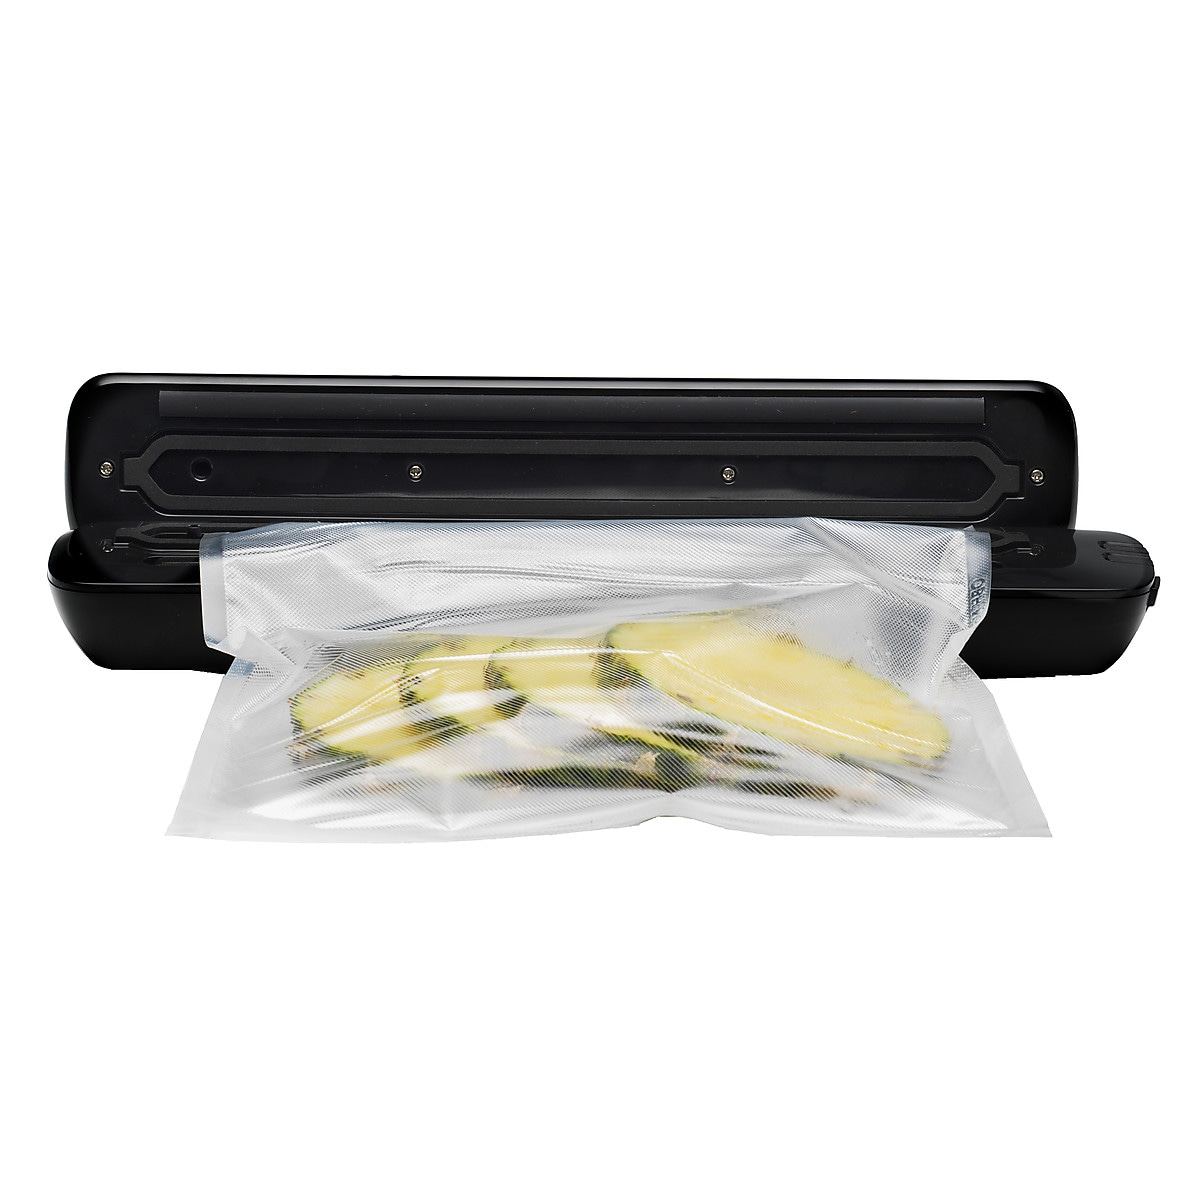 Vakuummaskin OBH Nordica Food Sealer Slim